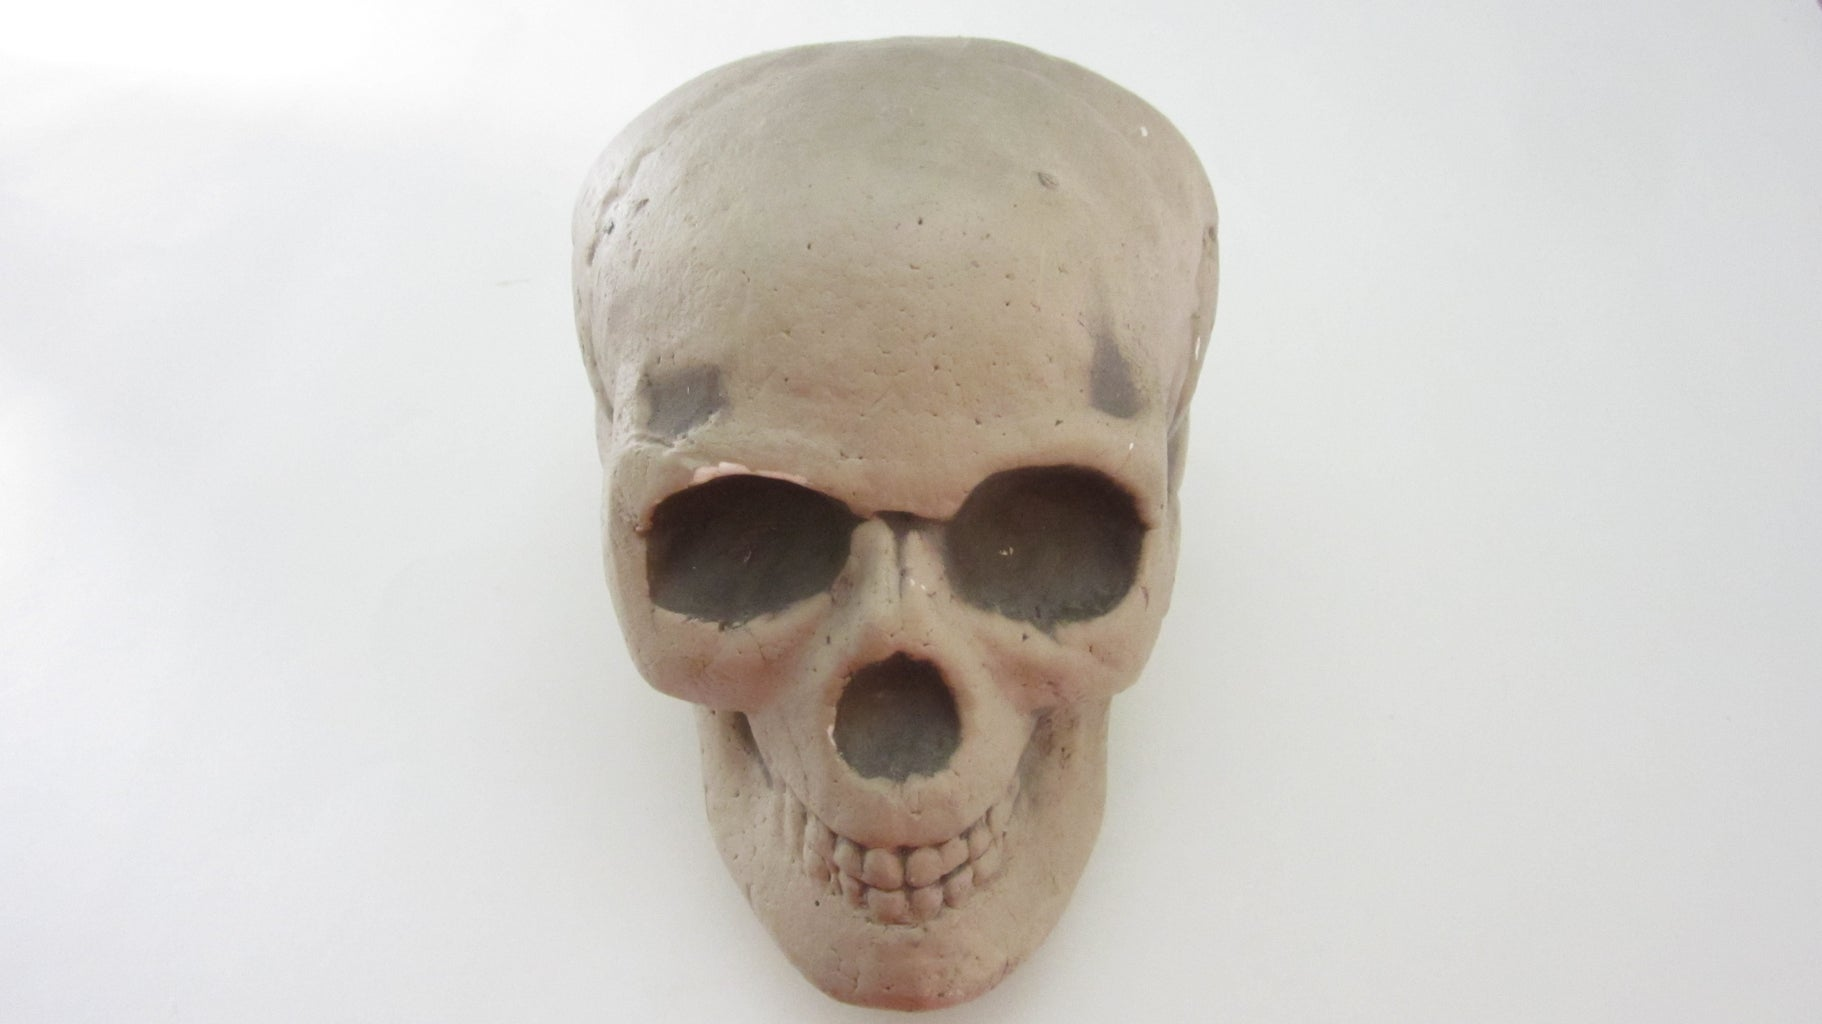 Select a Halloween Prop to Use